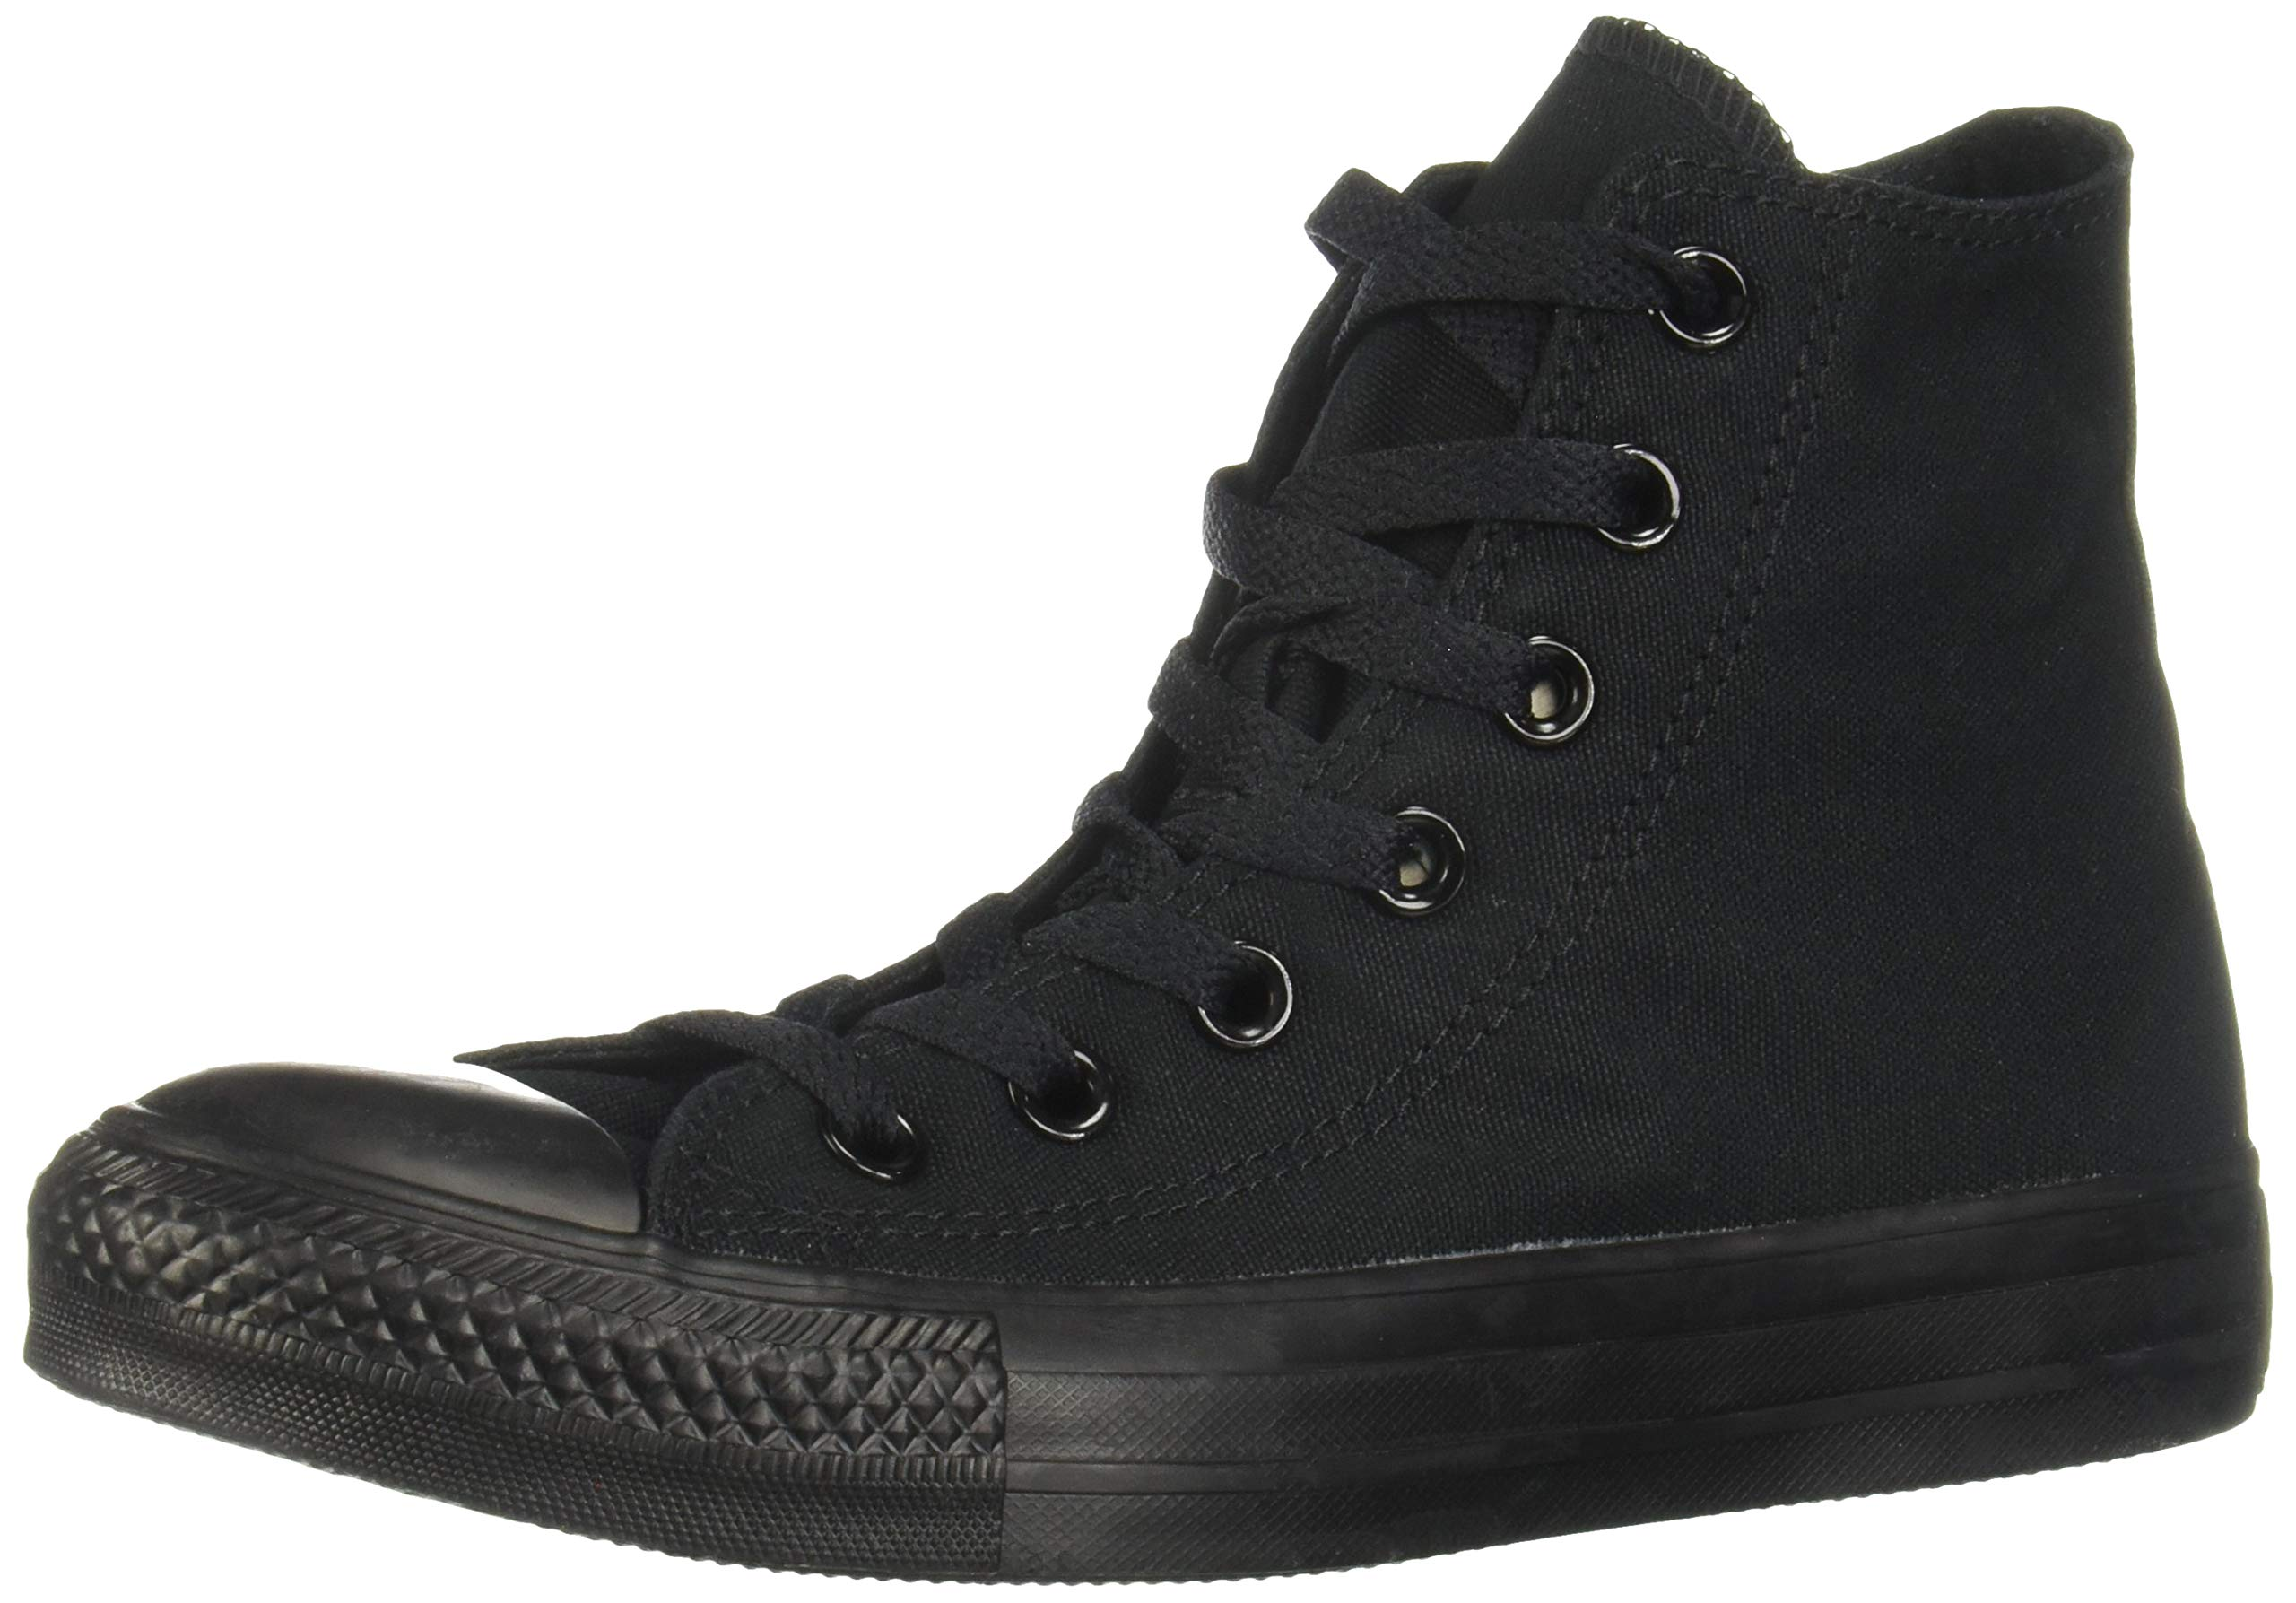 Converse Chuck Taylor All Star High Top Black/Black 9 D(M) US by Converse (Image #1)